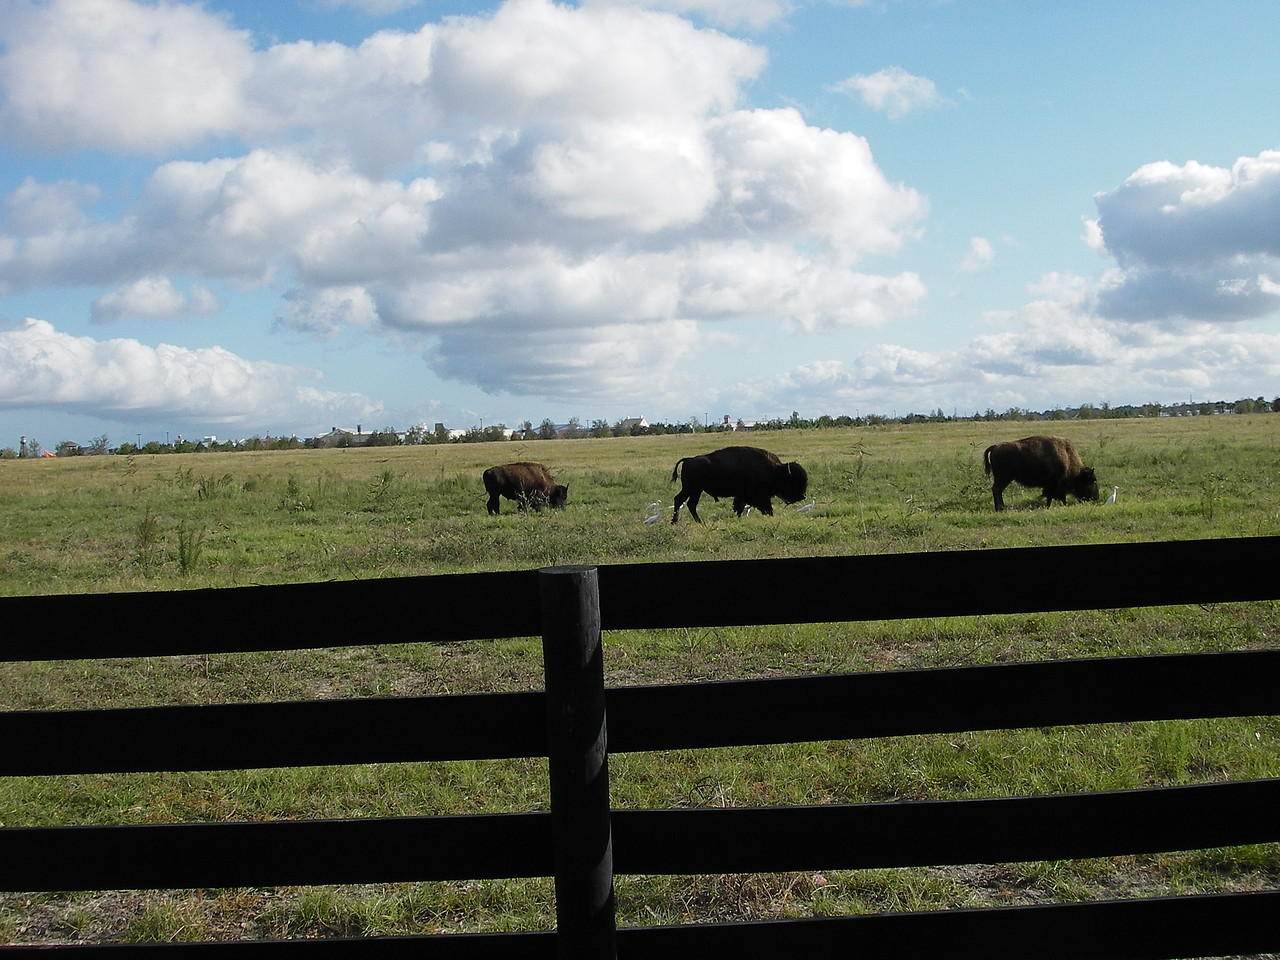 Buffalo in one of the Village's preserve areas.